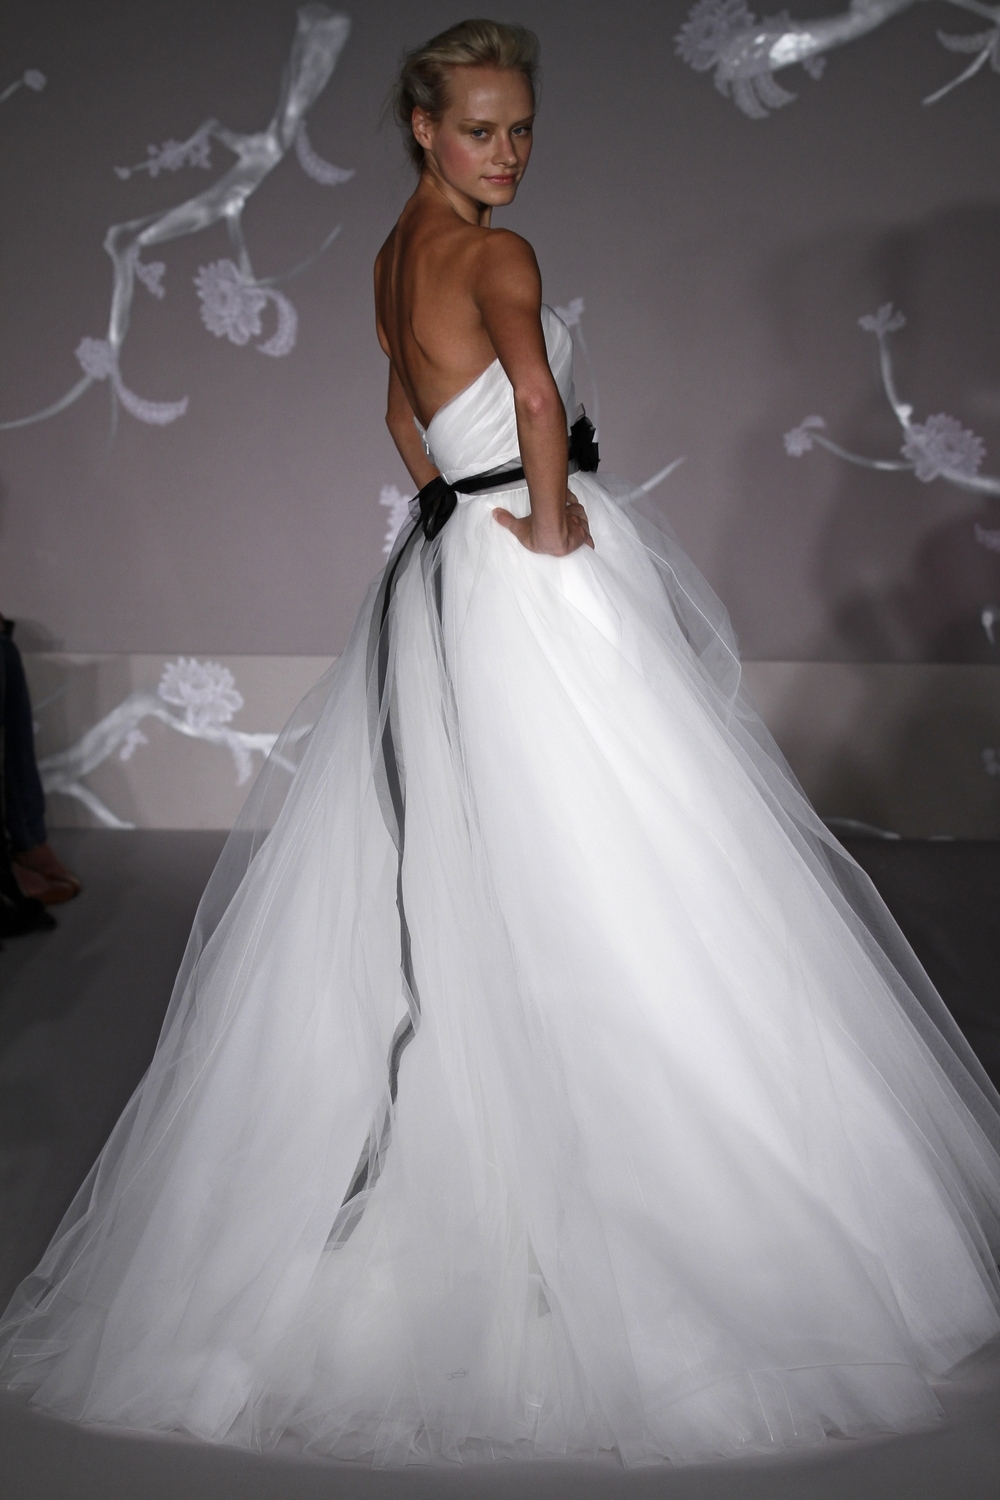 Gorgeous white ball gown wedding dress with tulle skirt and black ...